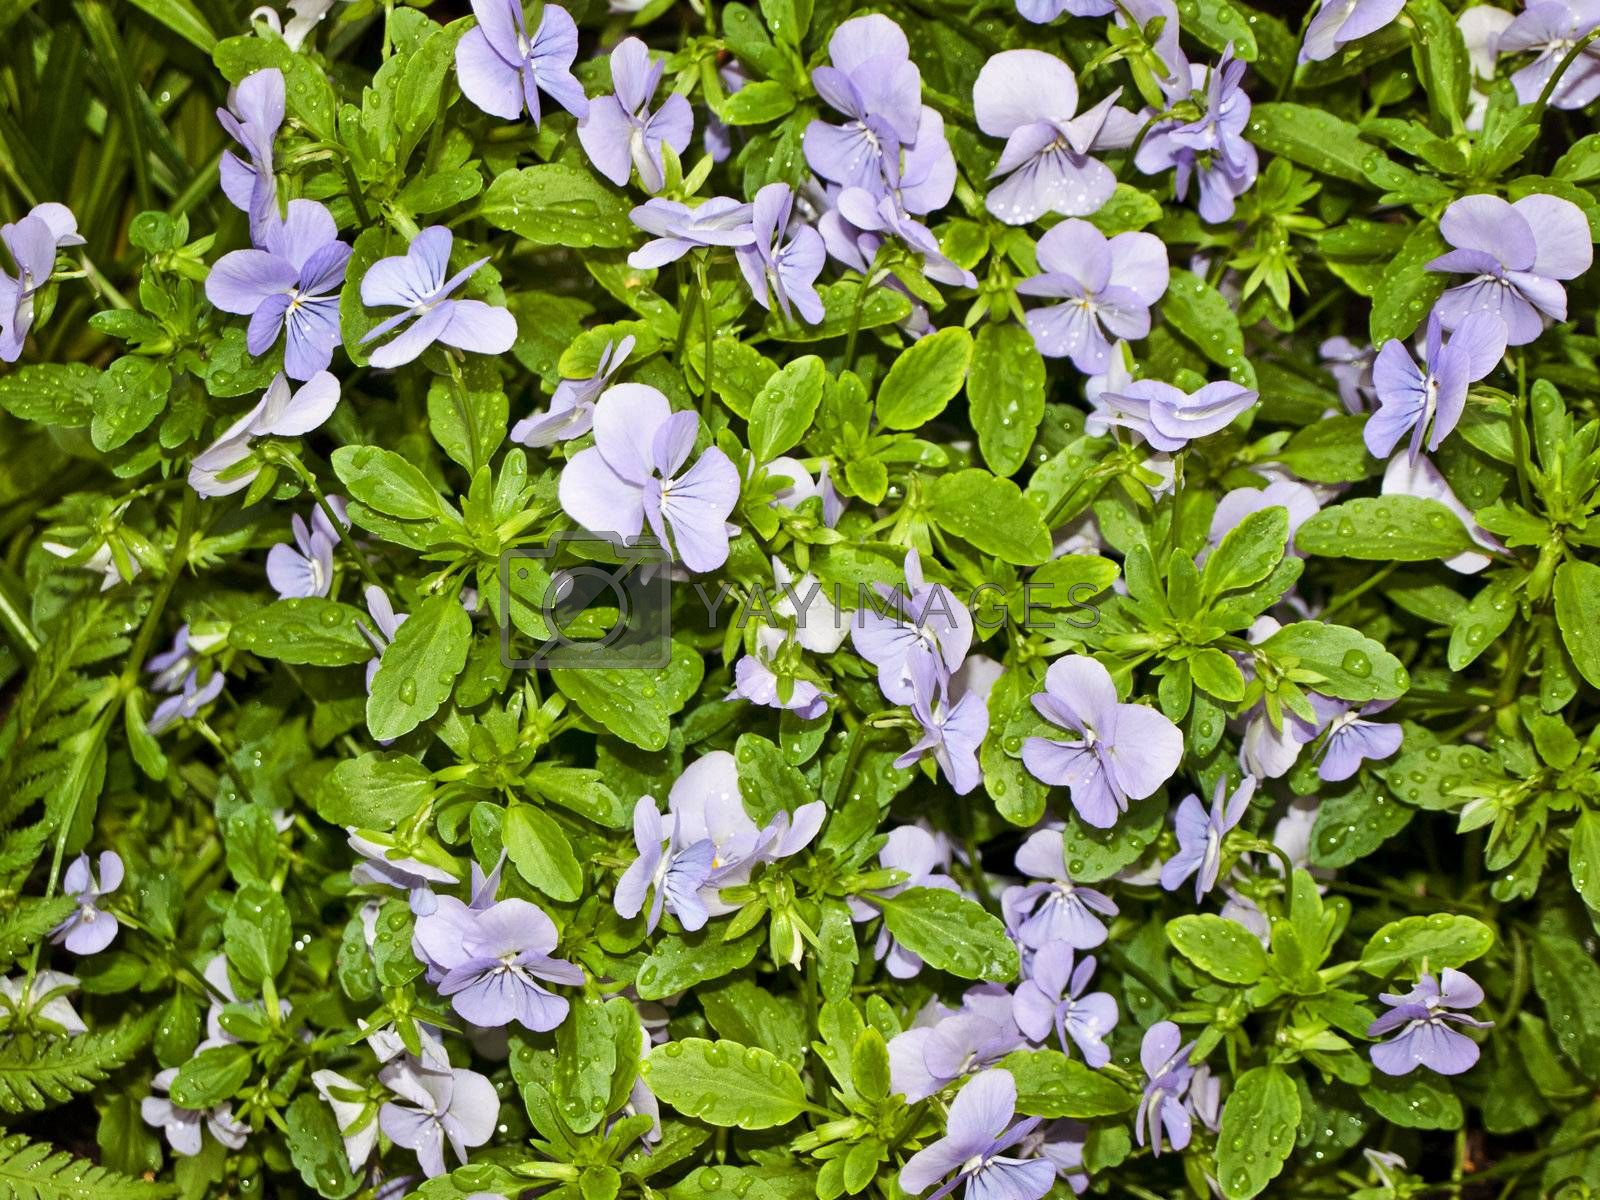 wet wild violet with green leaves